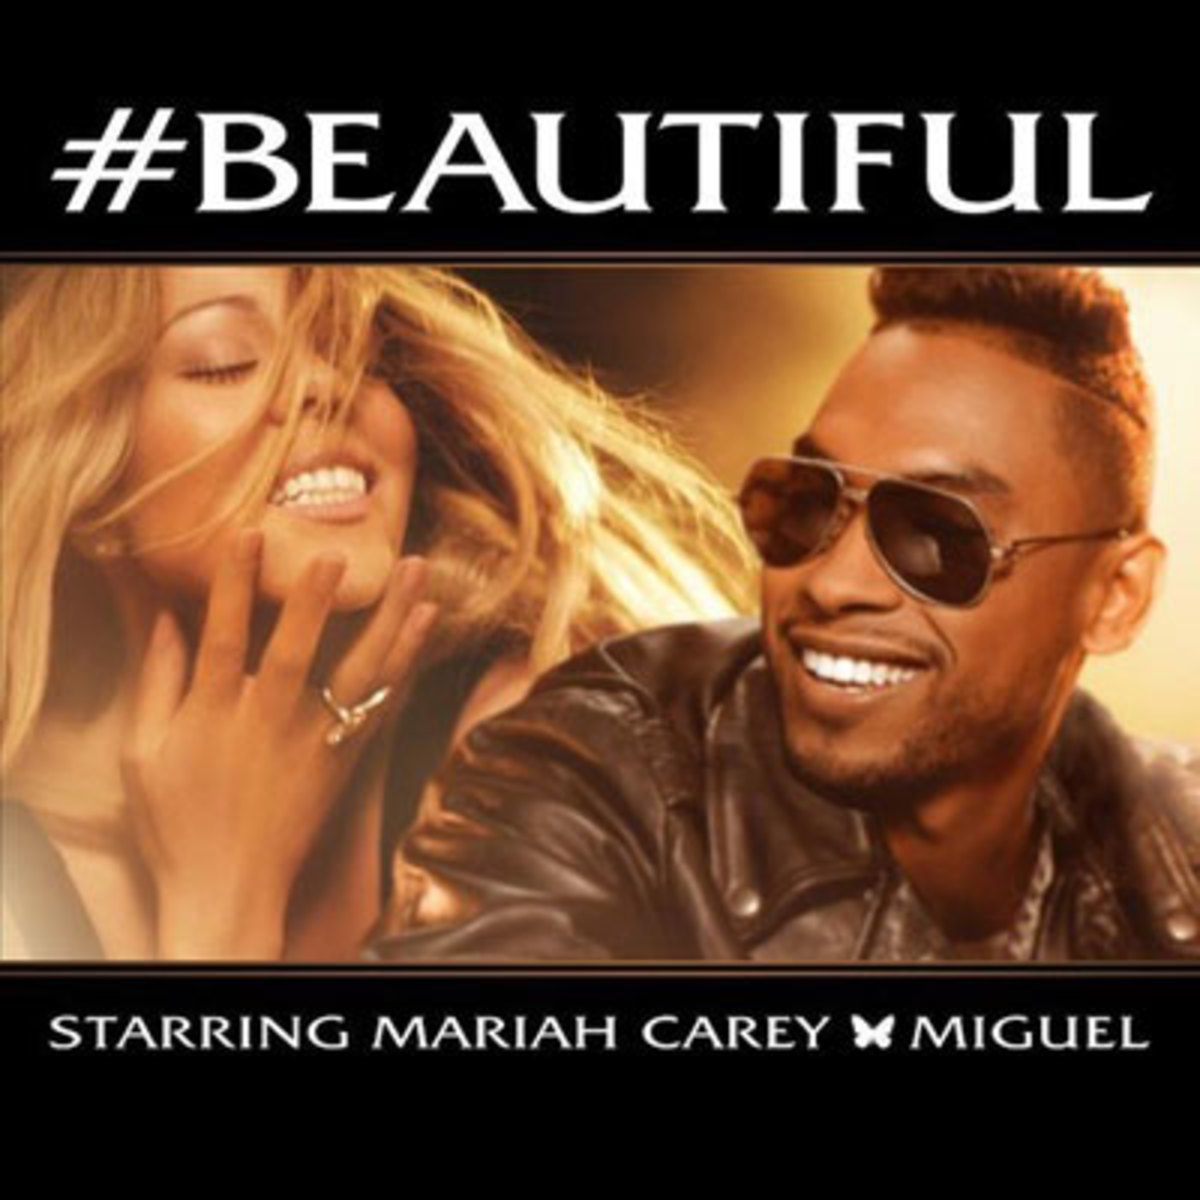 mariahcarey-beautiful.jpg